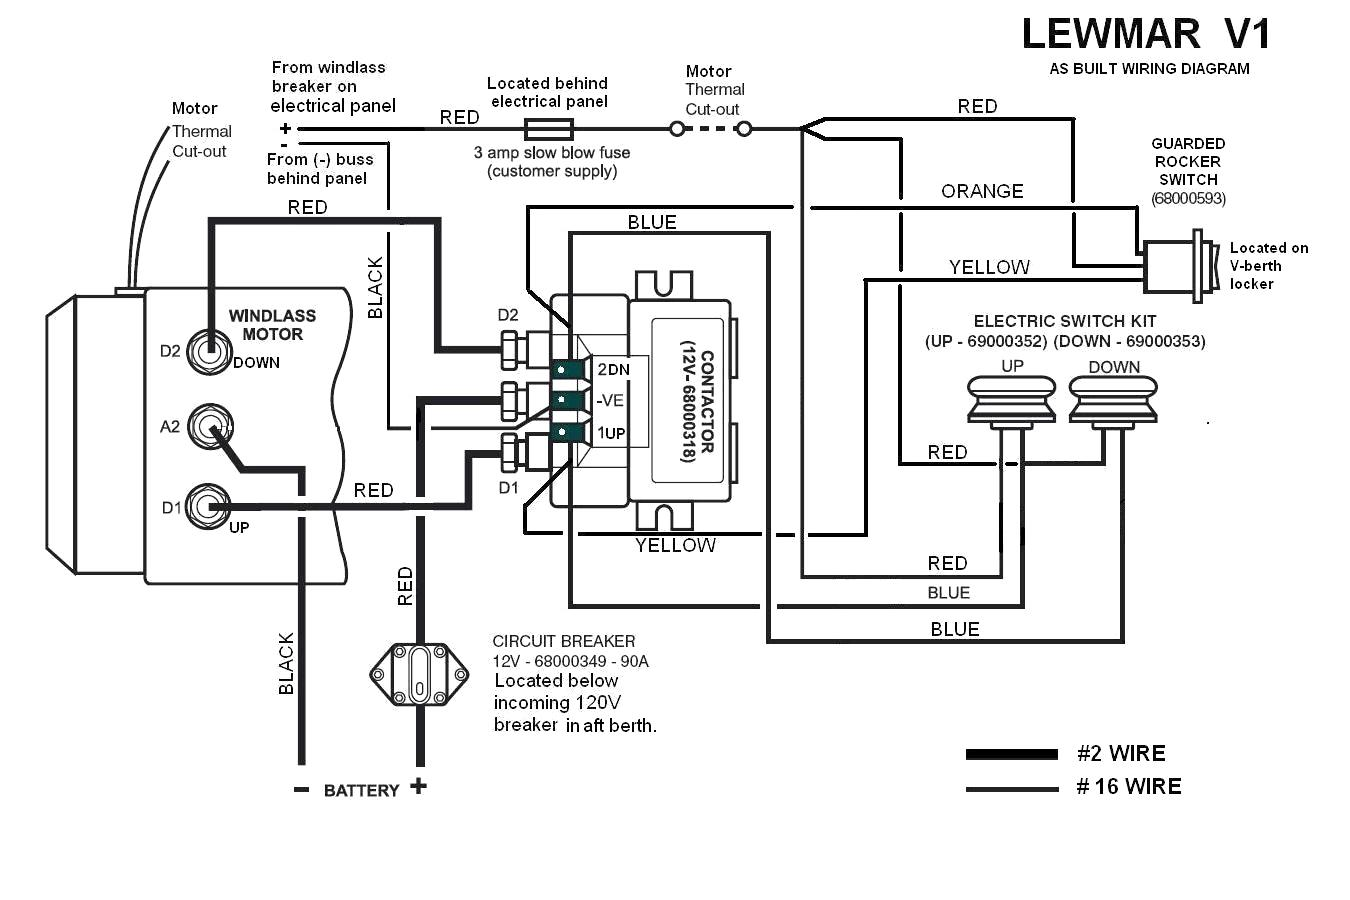 3 phase sub panel wiring diagram with Homeline Load Center Wiring Diagram on 3 Phase Ct Meter Wiring Diagrams additionally Help Sub Panels 208479 Print as well Nec Sub Panel Location additionally Wiring Diagram Breaker Panel as well Small Engine Ignition Switch Wiring Diagram.